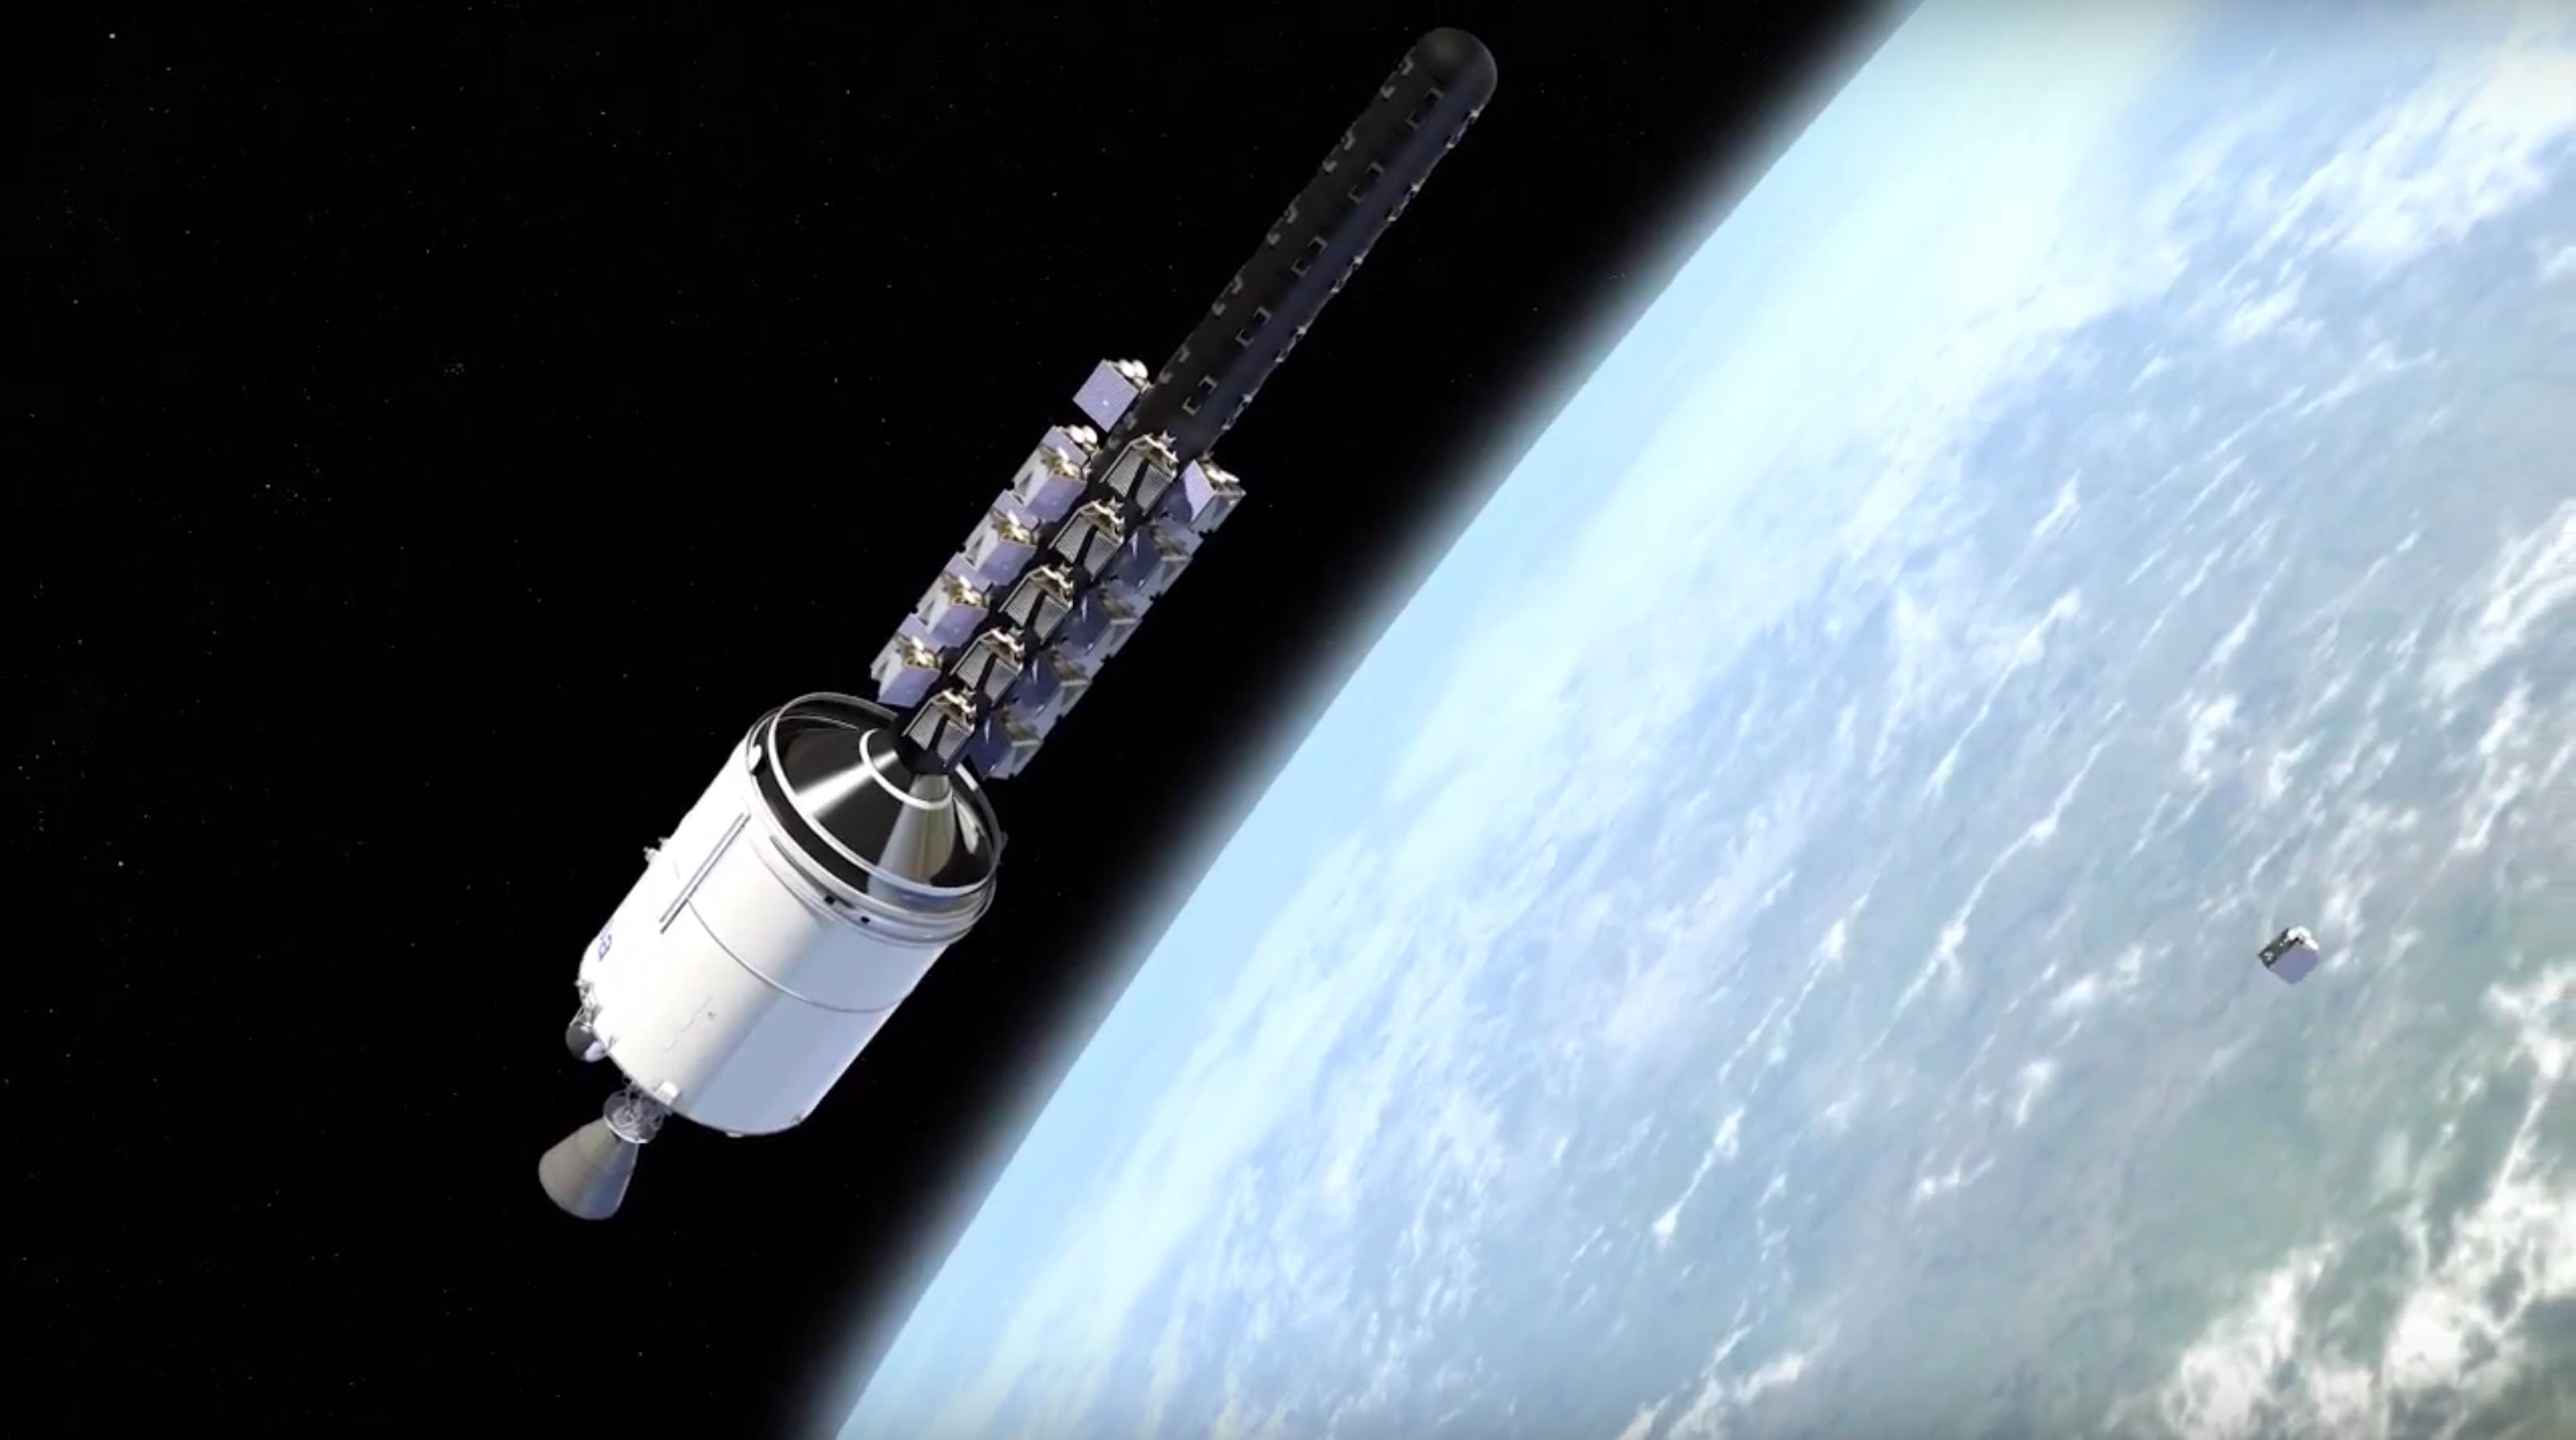 Ariane 6 OneWeb constellation dispenser (Arianespace) 11